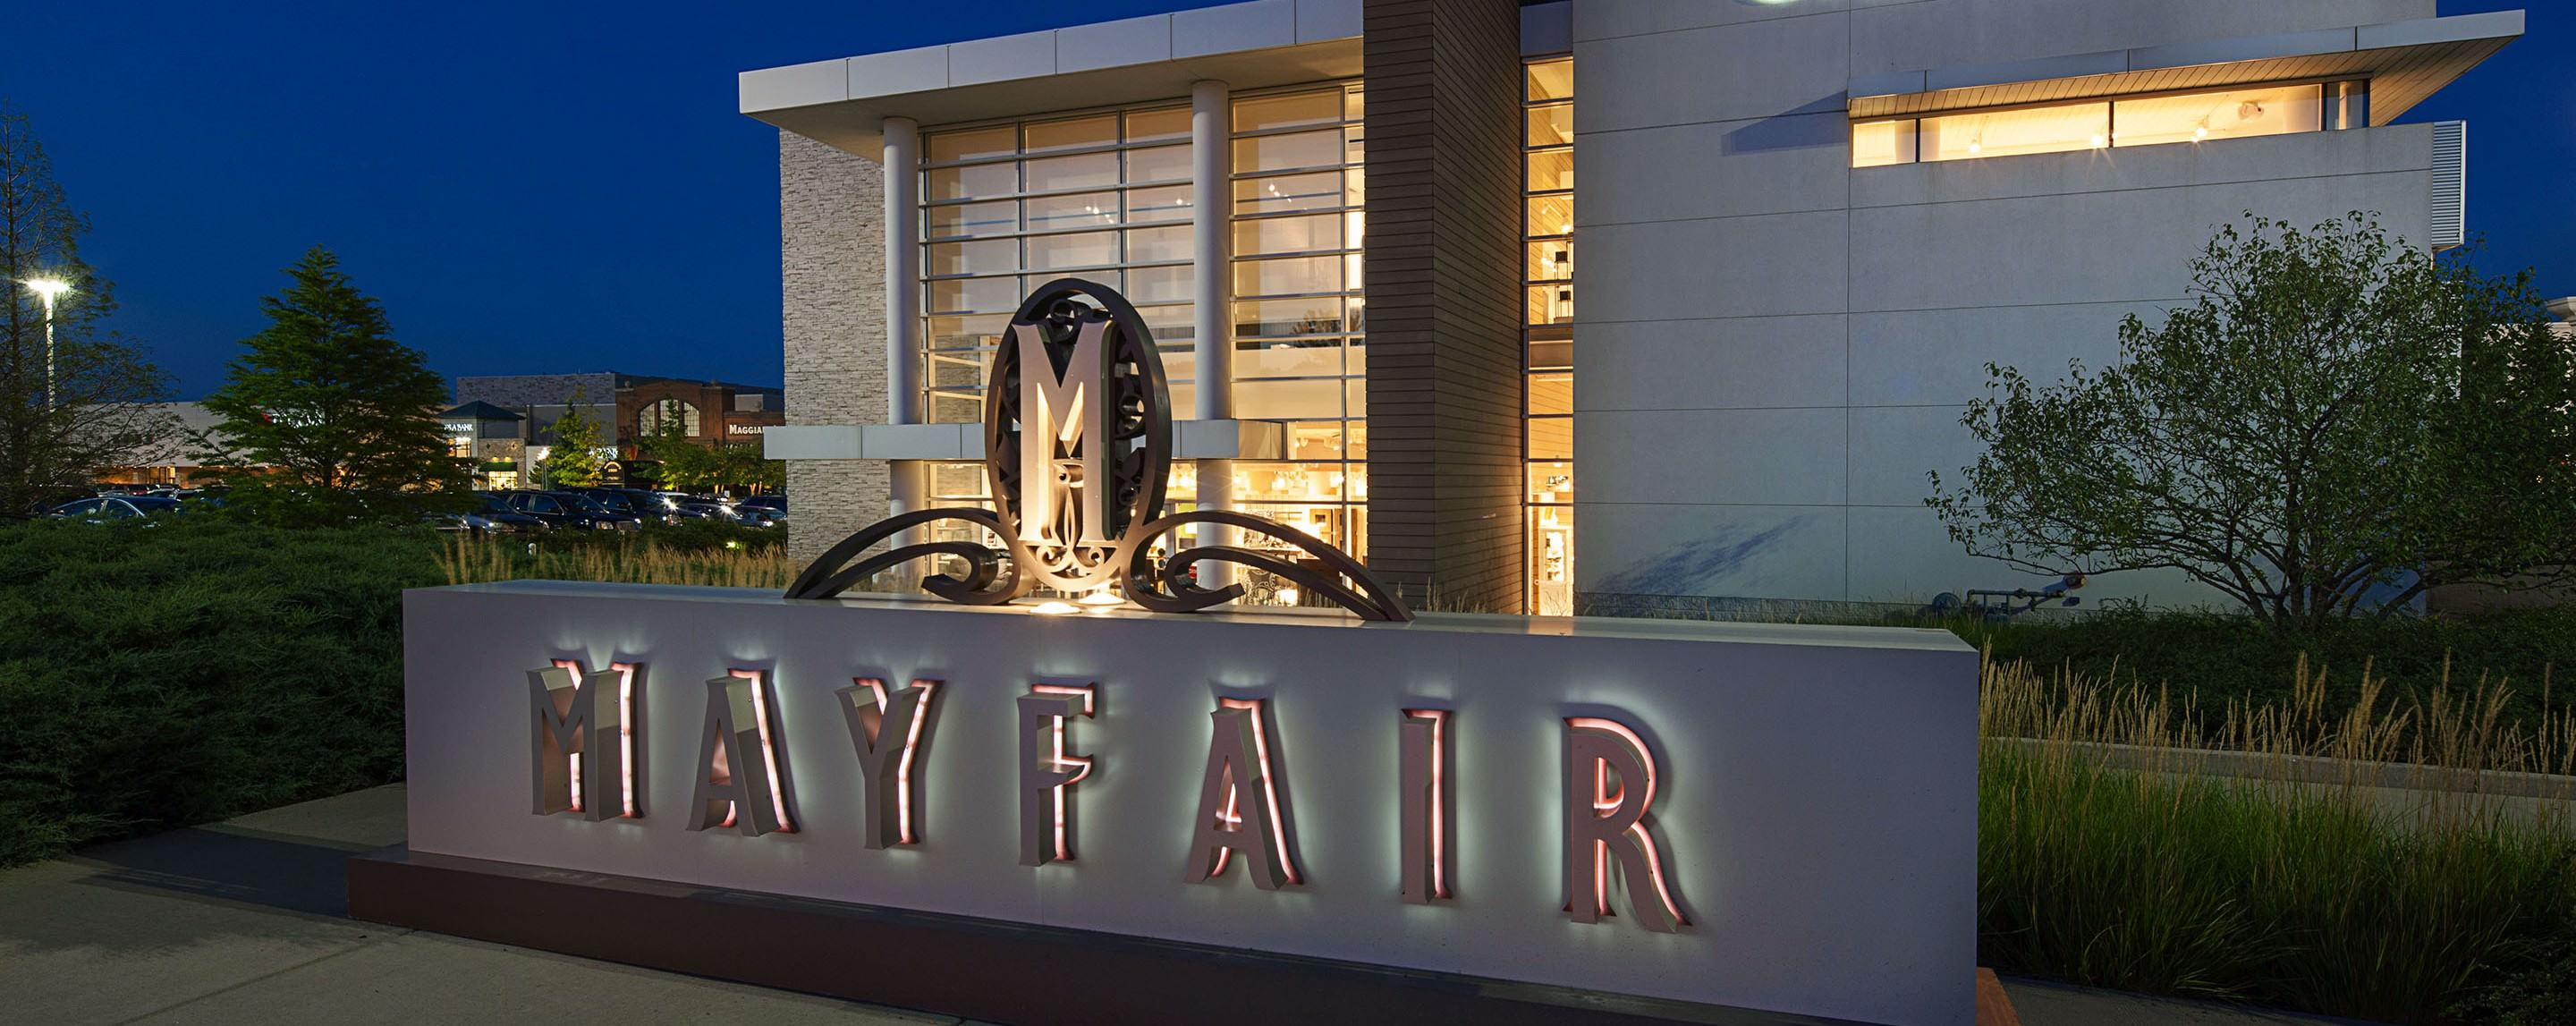 """A sign for an outdoor shopping plaza illuminating the word """"Mayfair"""" with backlit, embossed text in"""